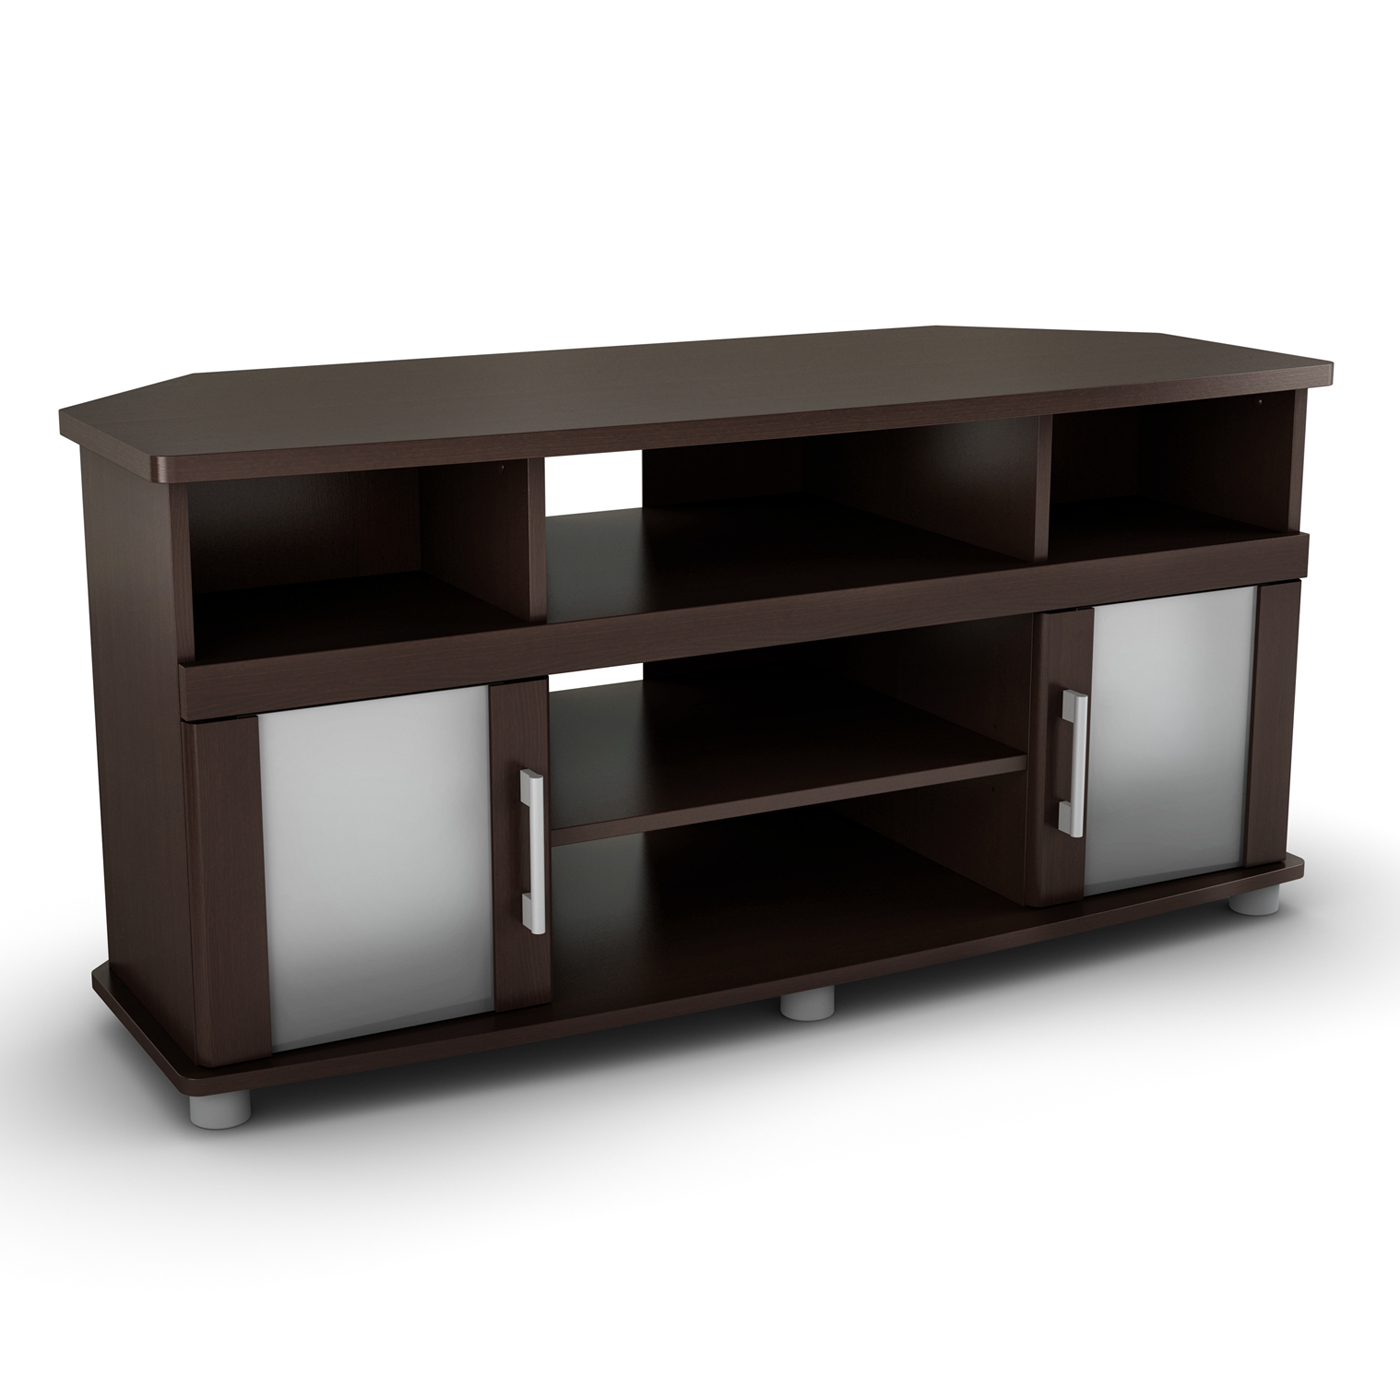 Lowe's Canada In 24 Inch Deep Tv Stands (Gallery 11 of 20)